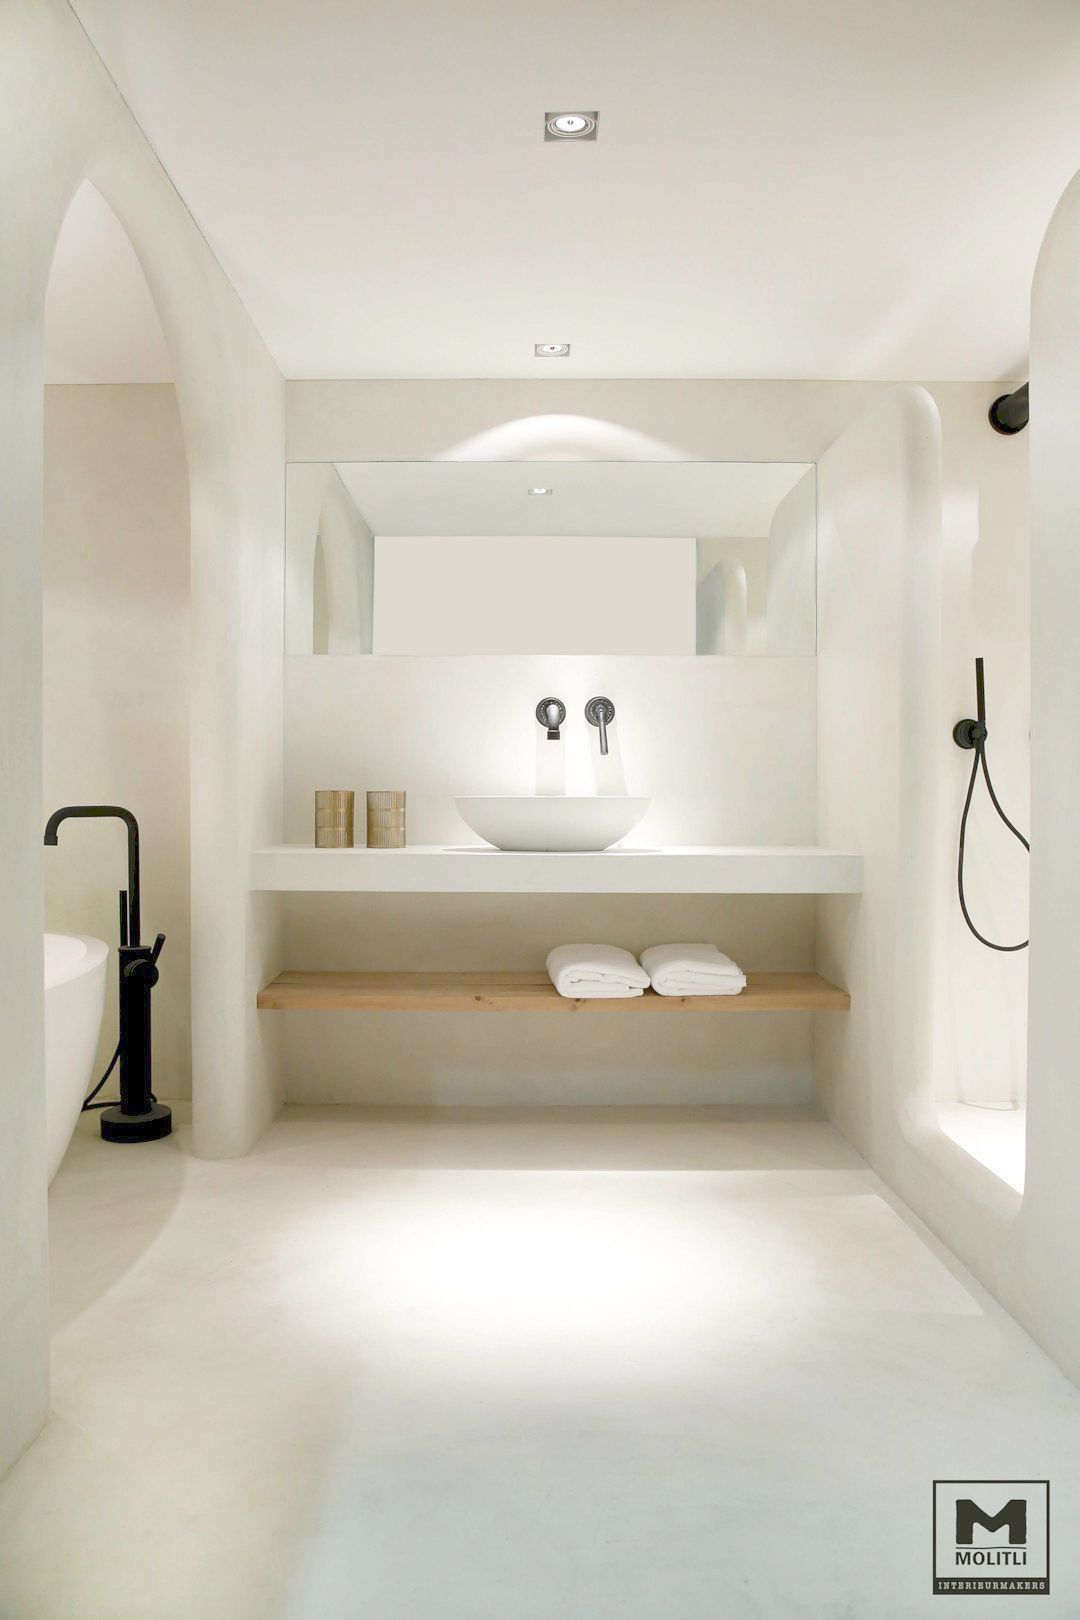 Bathroom Tile Accessories In Mirrors Storage Since